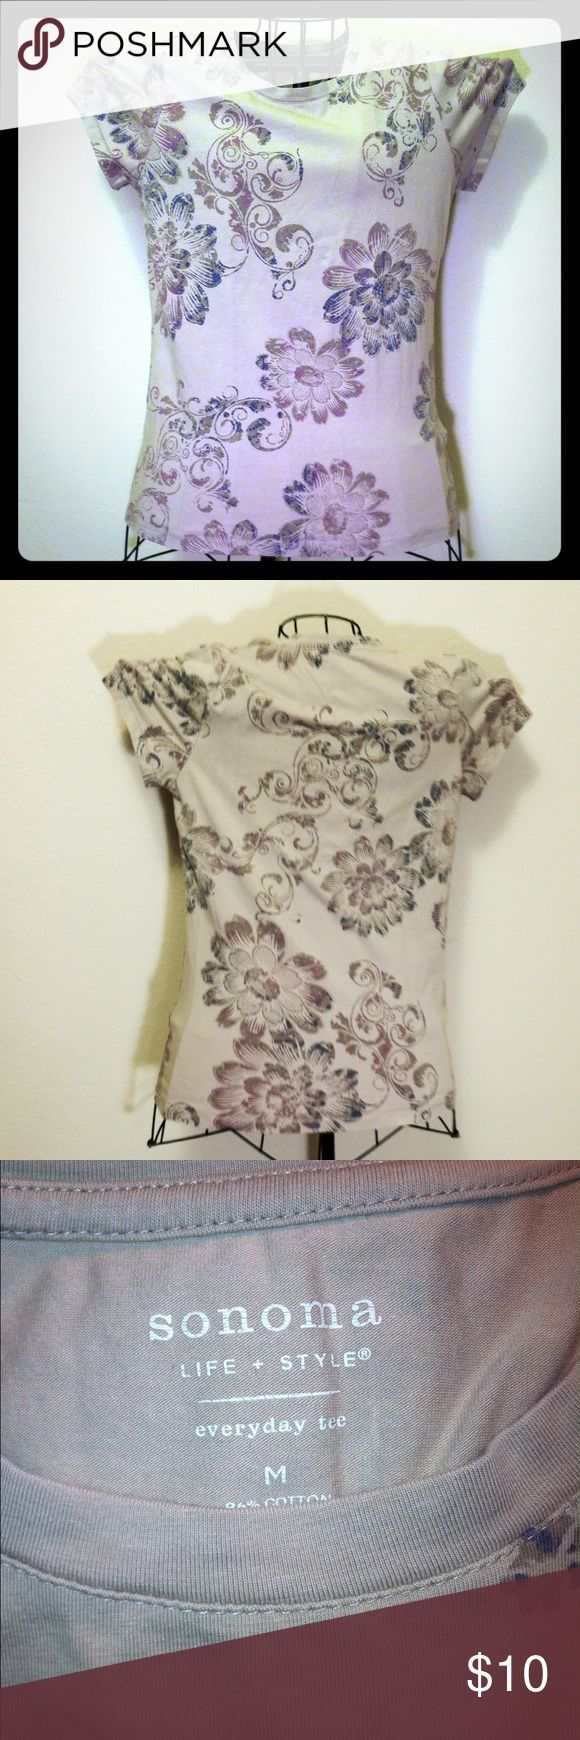 """""""Sonoma"""" M (8-10), woman's t-shirt, biege floral 96% cotton & 4% spandex, woman's size medium (8-10), basic Tee- shirt, beige with brown & purple floral, new without tags, very nice new condition, some accent colors of coral/melon, green, purple in decorations, main color brown, short sleeve, rounded neck, NEW WITHOUT TAGS, still in NEW CONDITION, hasn't been worn, """"Sonoma"""" brand name - (Kohl's) regular original retail- $17.99, made in California, USA. Sonoma Tops Tees - Short Sleeve"""